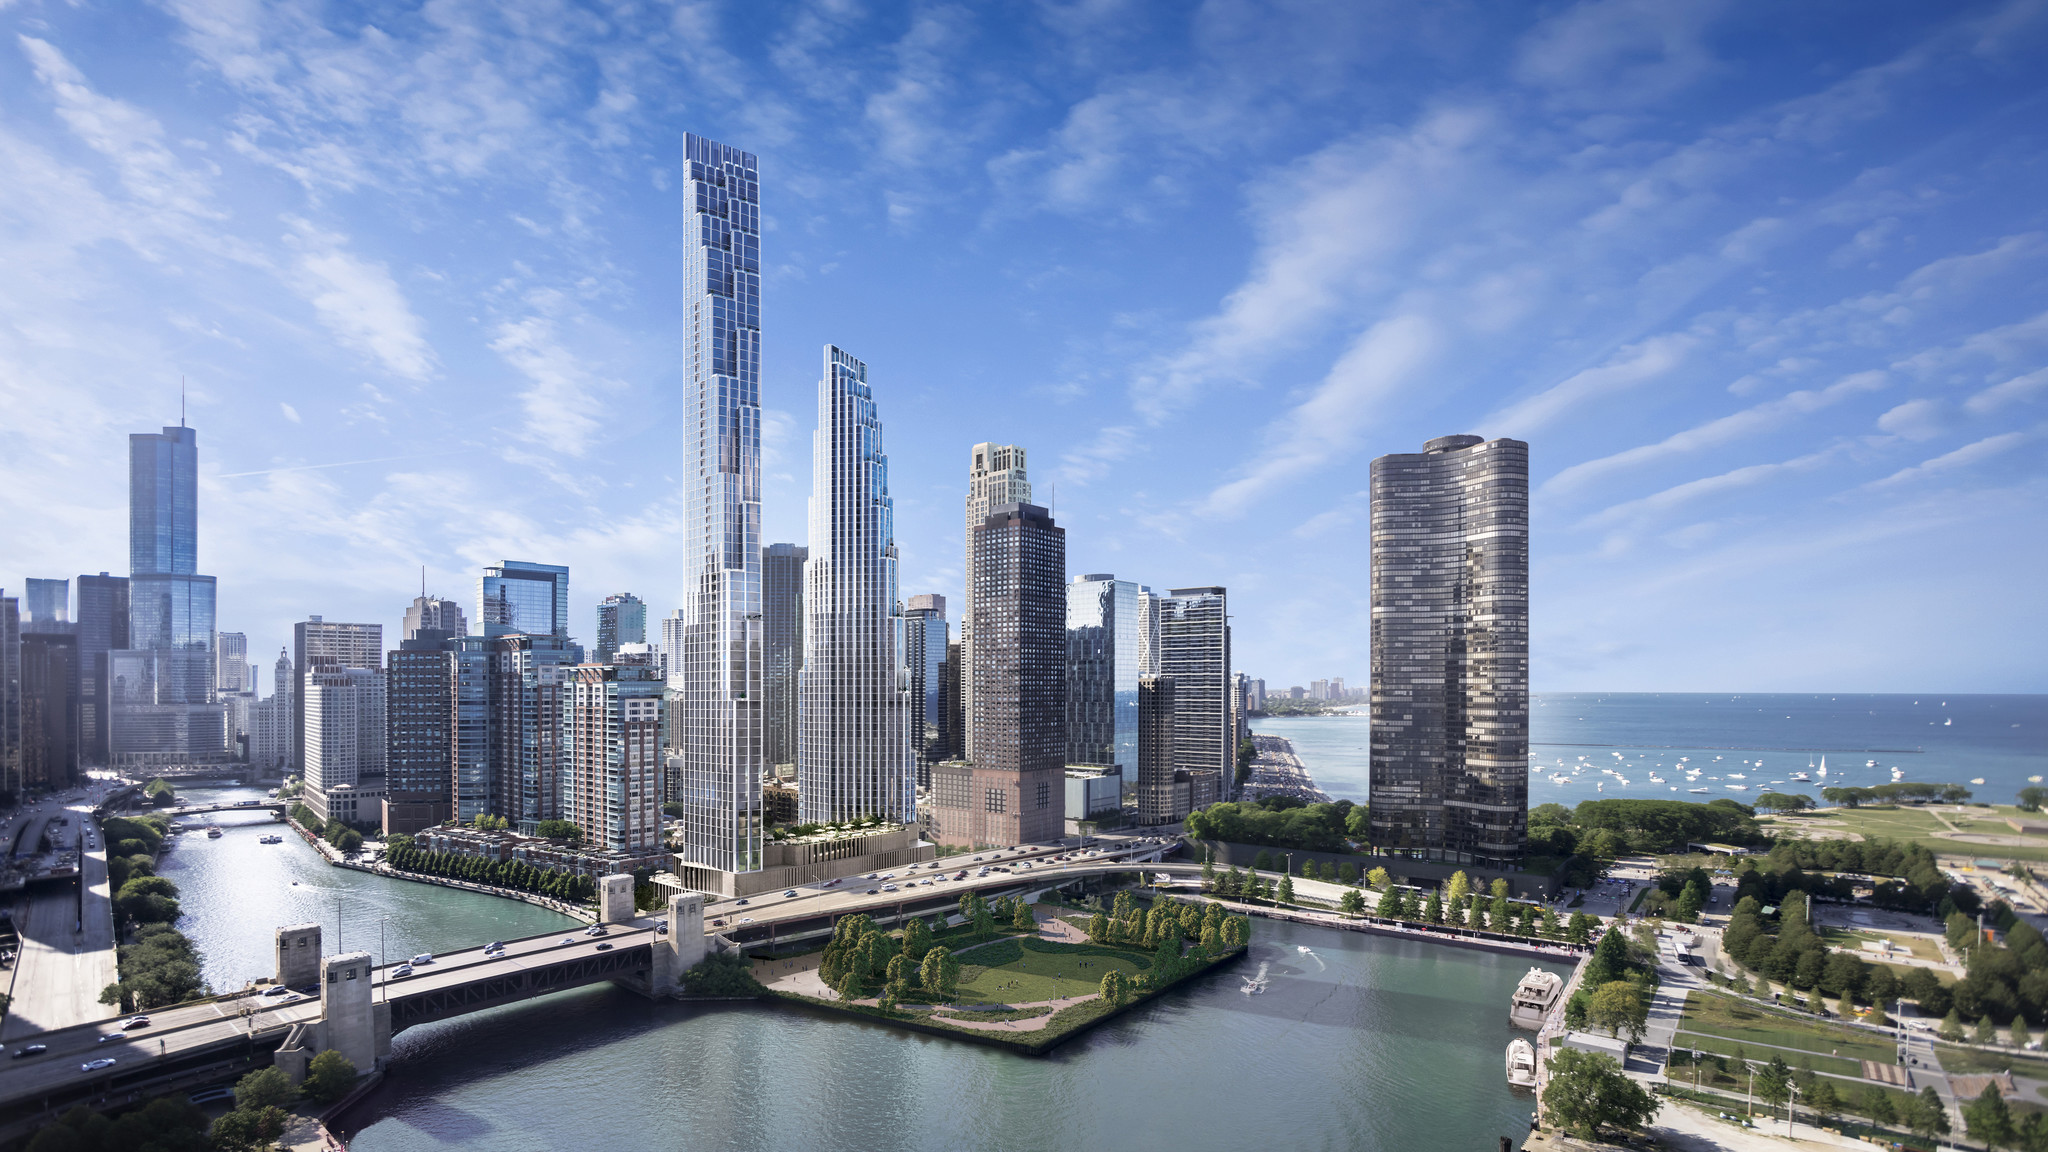 Developer of former Chicago Spire site gets more time to revise plans, after proposal for two skyscrapers was rejected